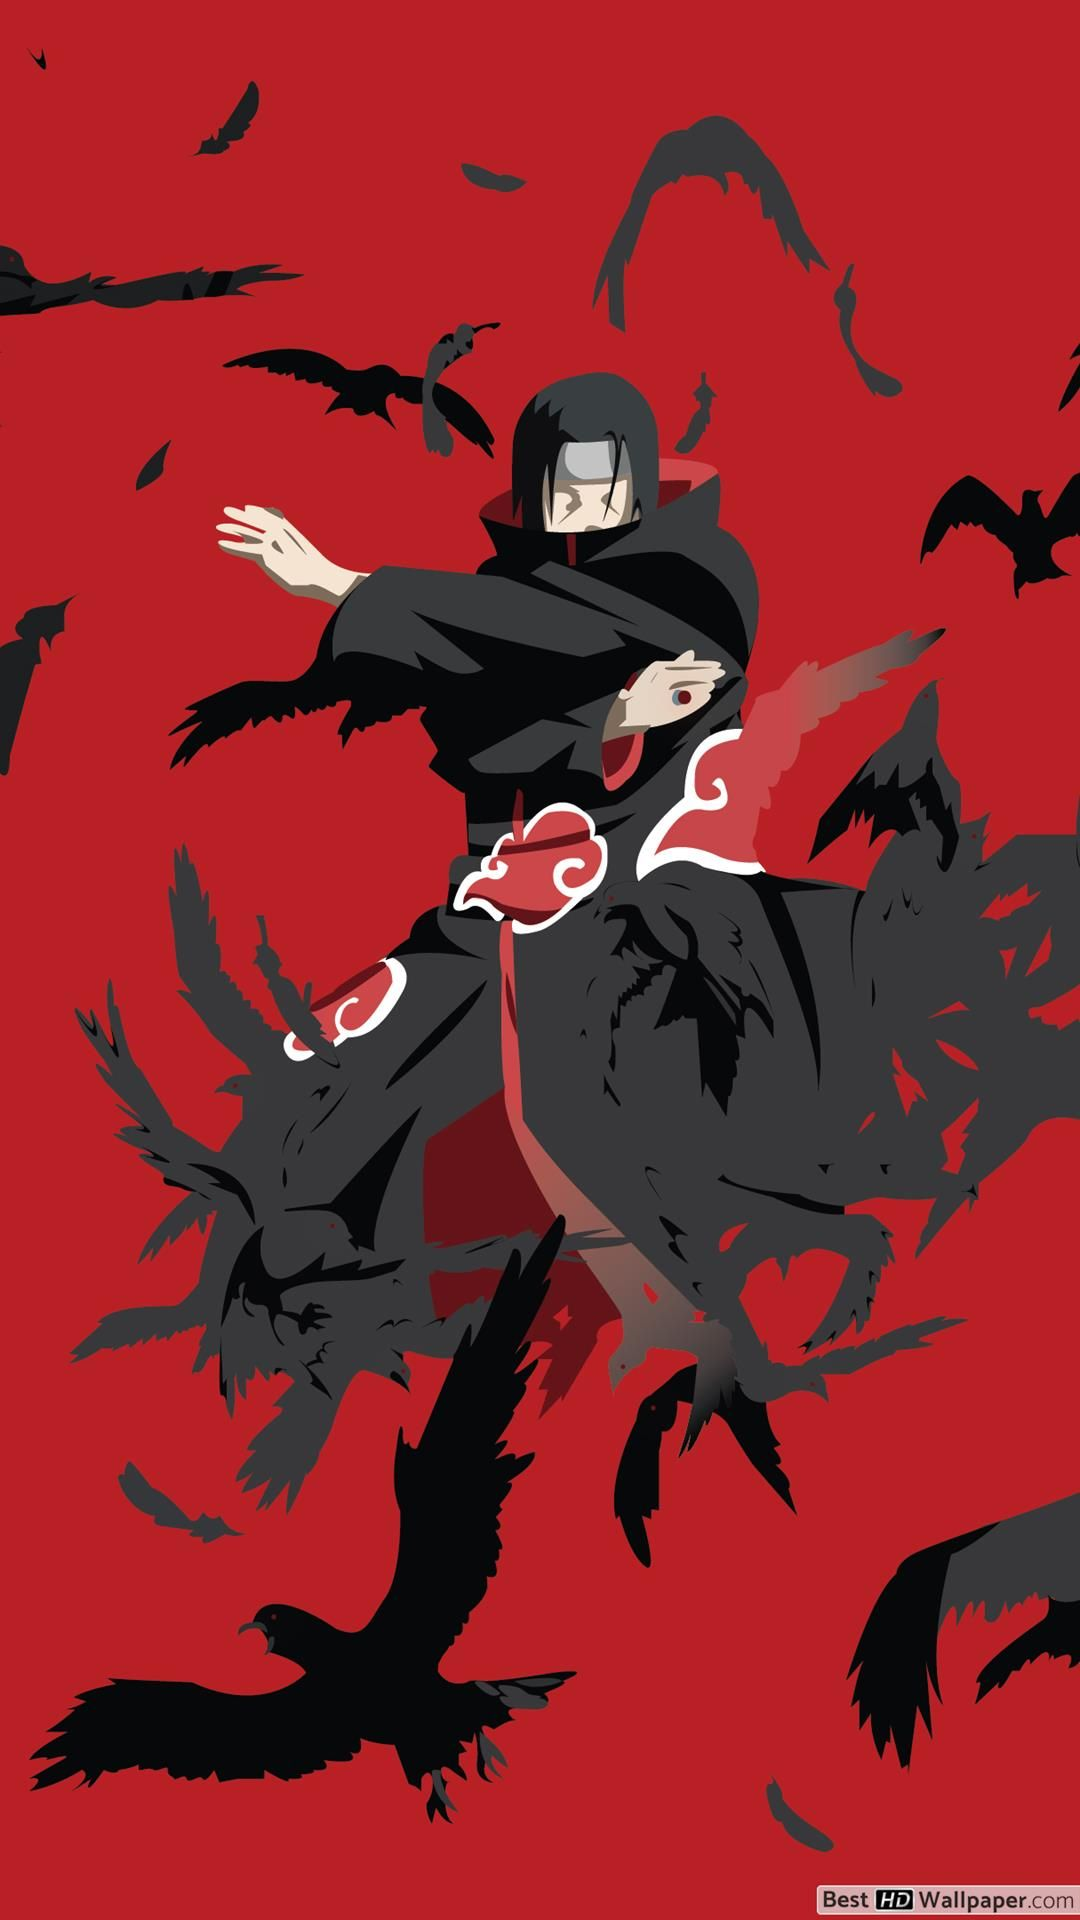 Itachi Uchiha Wallpaper Iphone 599203 Wallpaper Naruto Shippuden Itachi Uchiha Naruto Wallpaper Iphone